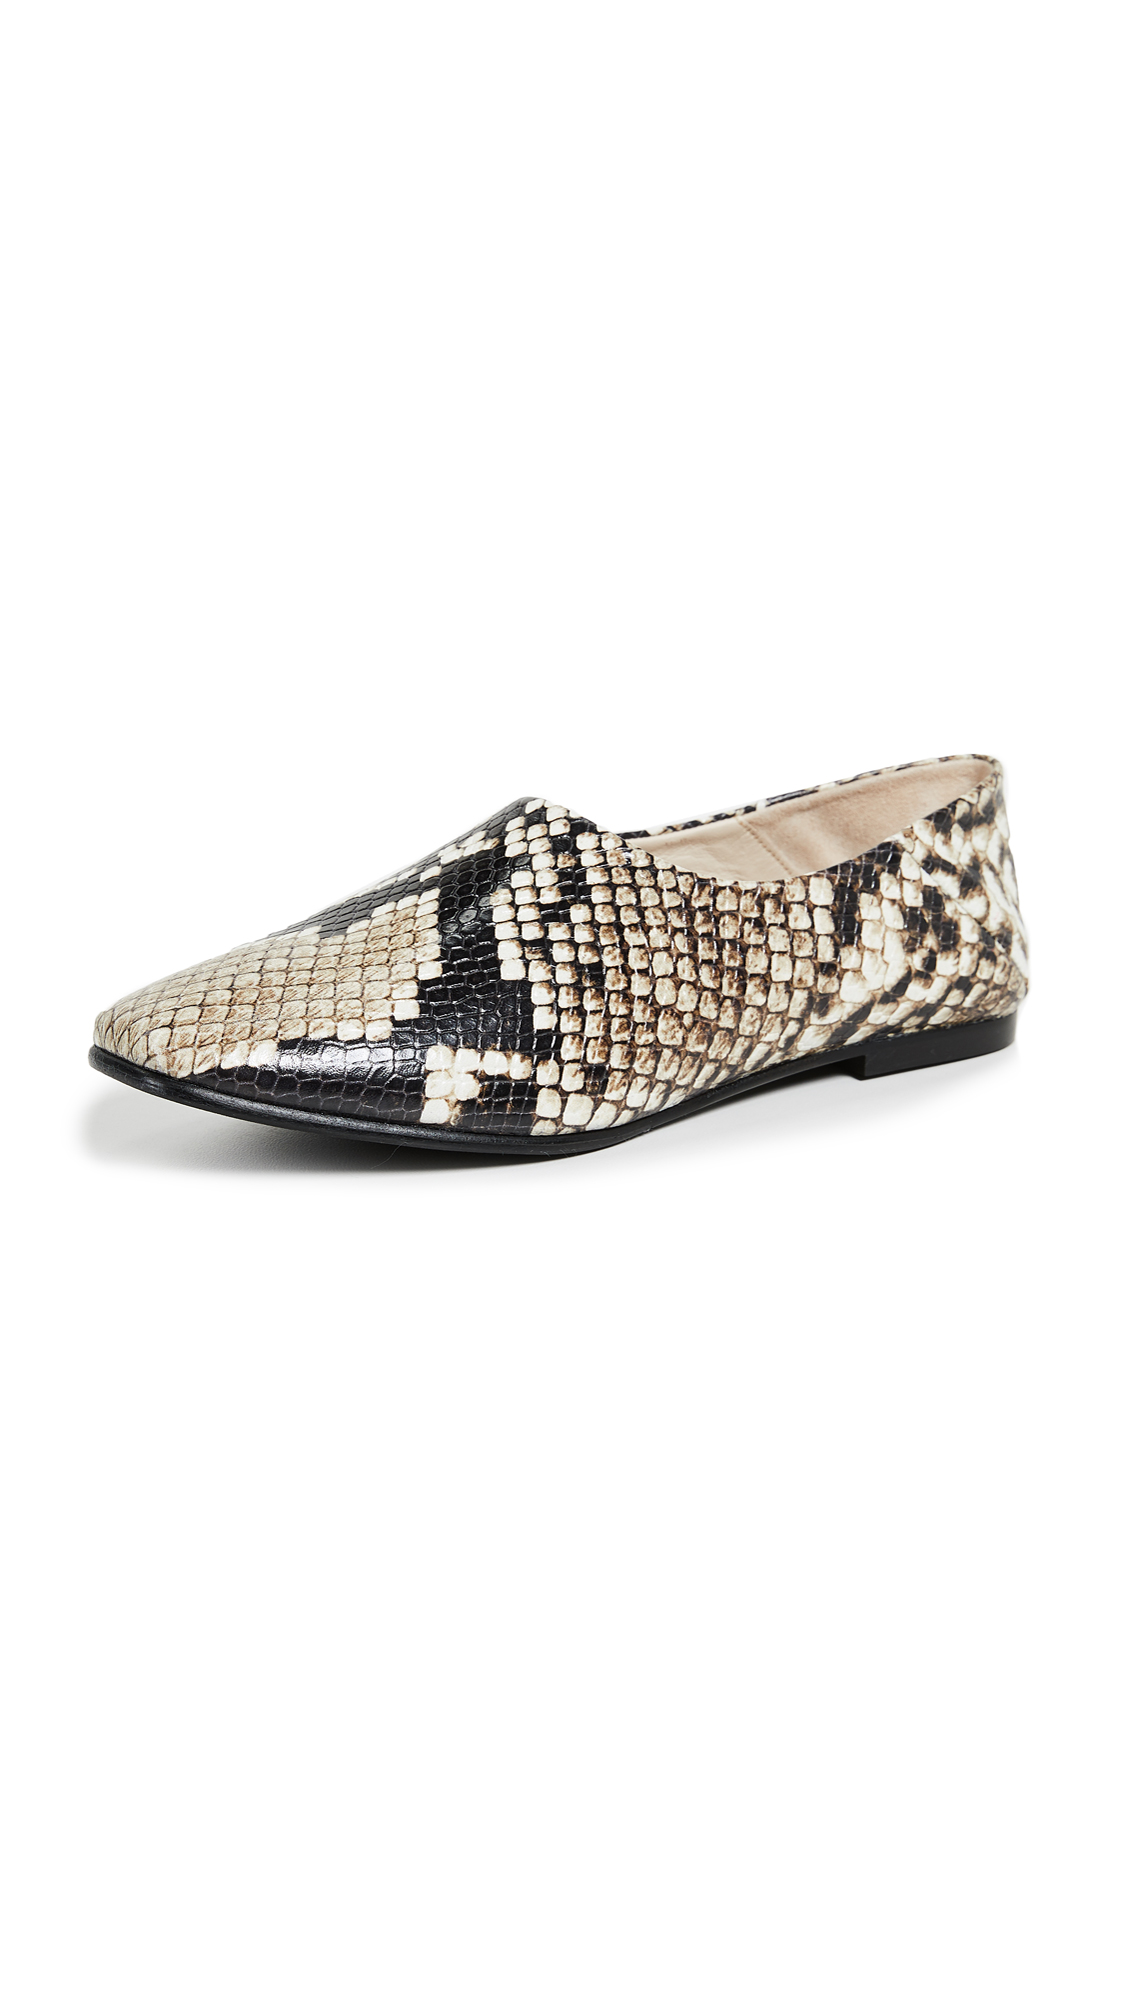 FREDA SALVADOR WOMEN'S BABOUCHE SNAKE EMBOSSED LEATHER FLATS